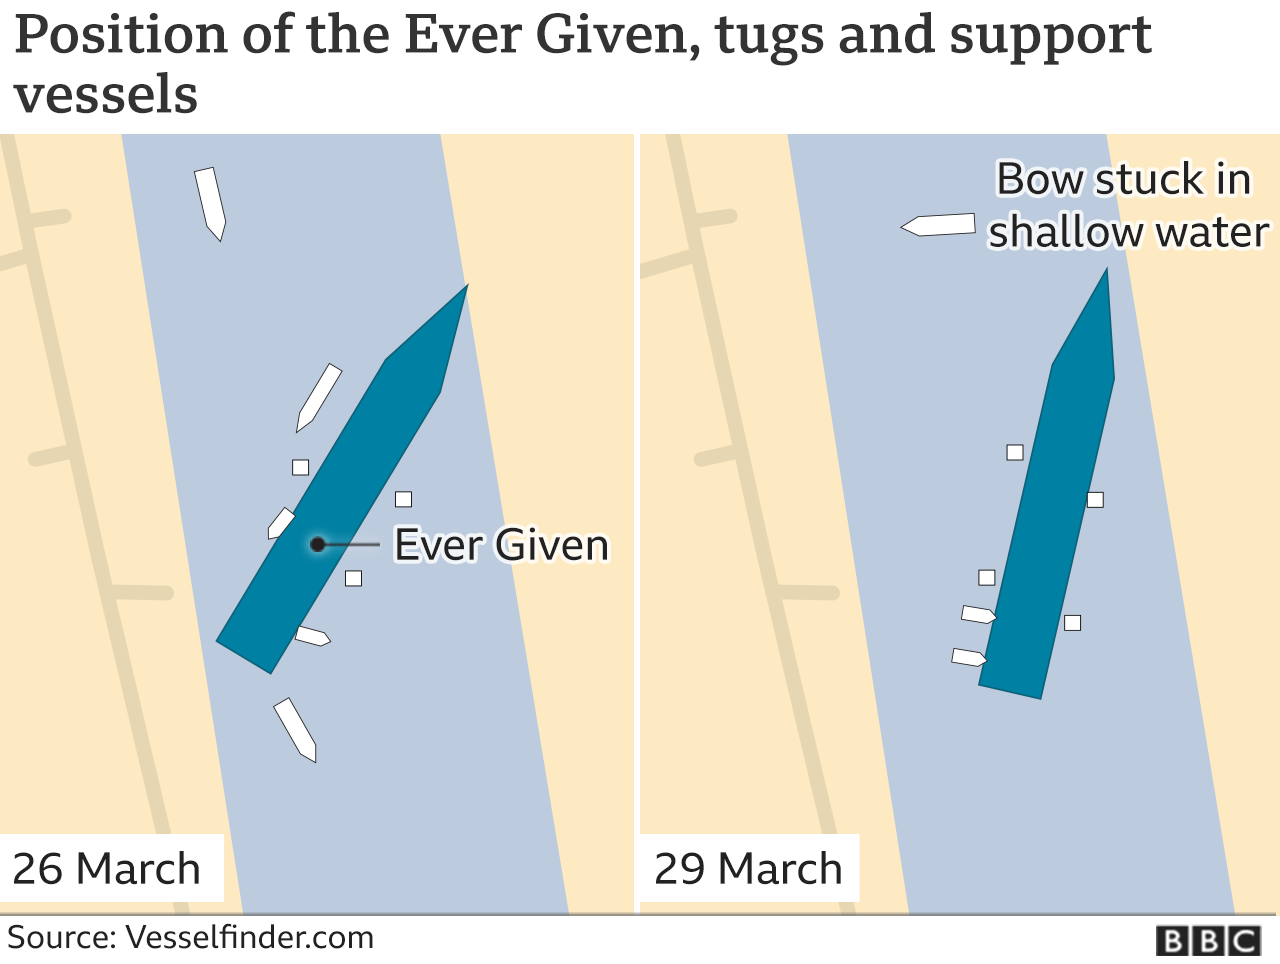 - 3 evergiven - HOW THE SUEZ CANAL INCIDENT IS A GOOD USE OF SPACE TECHNOLOGIES IN AFRICA